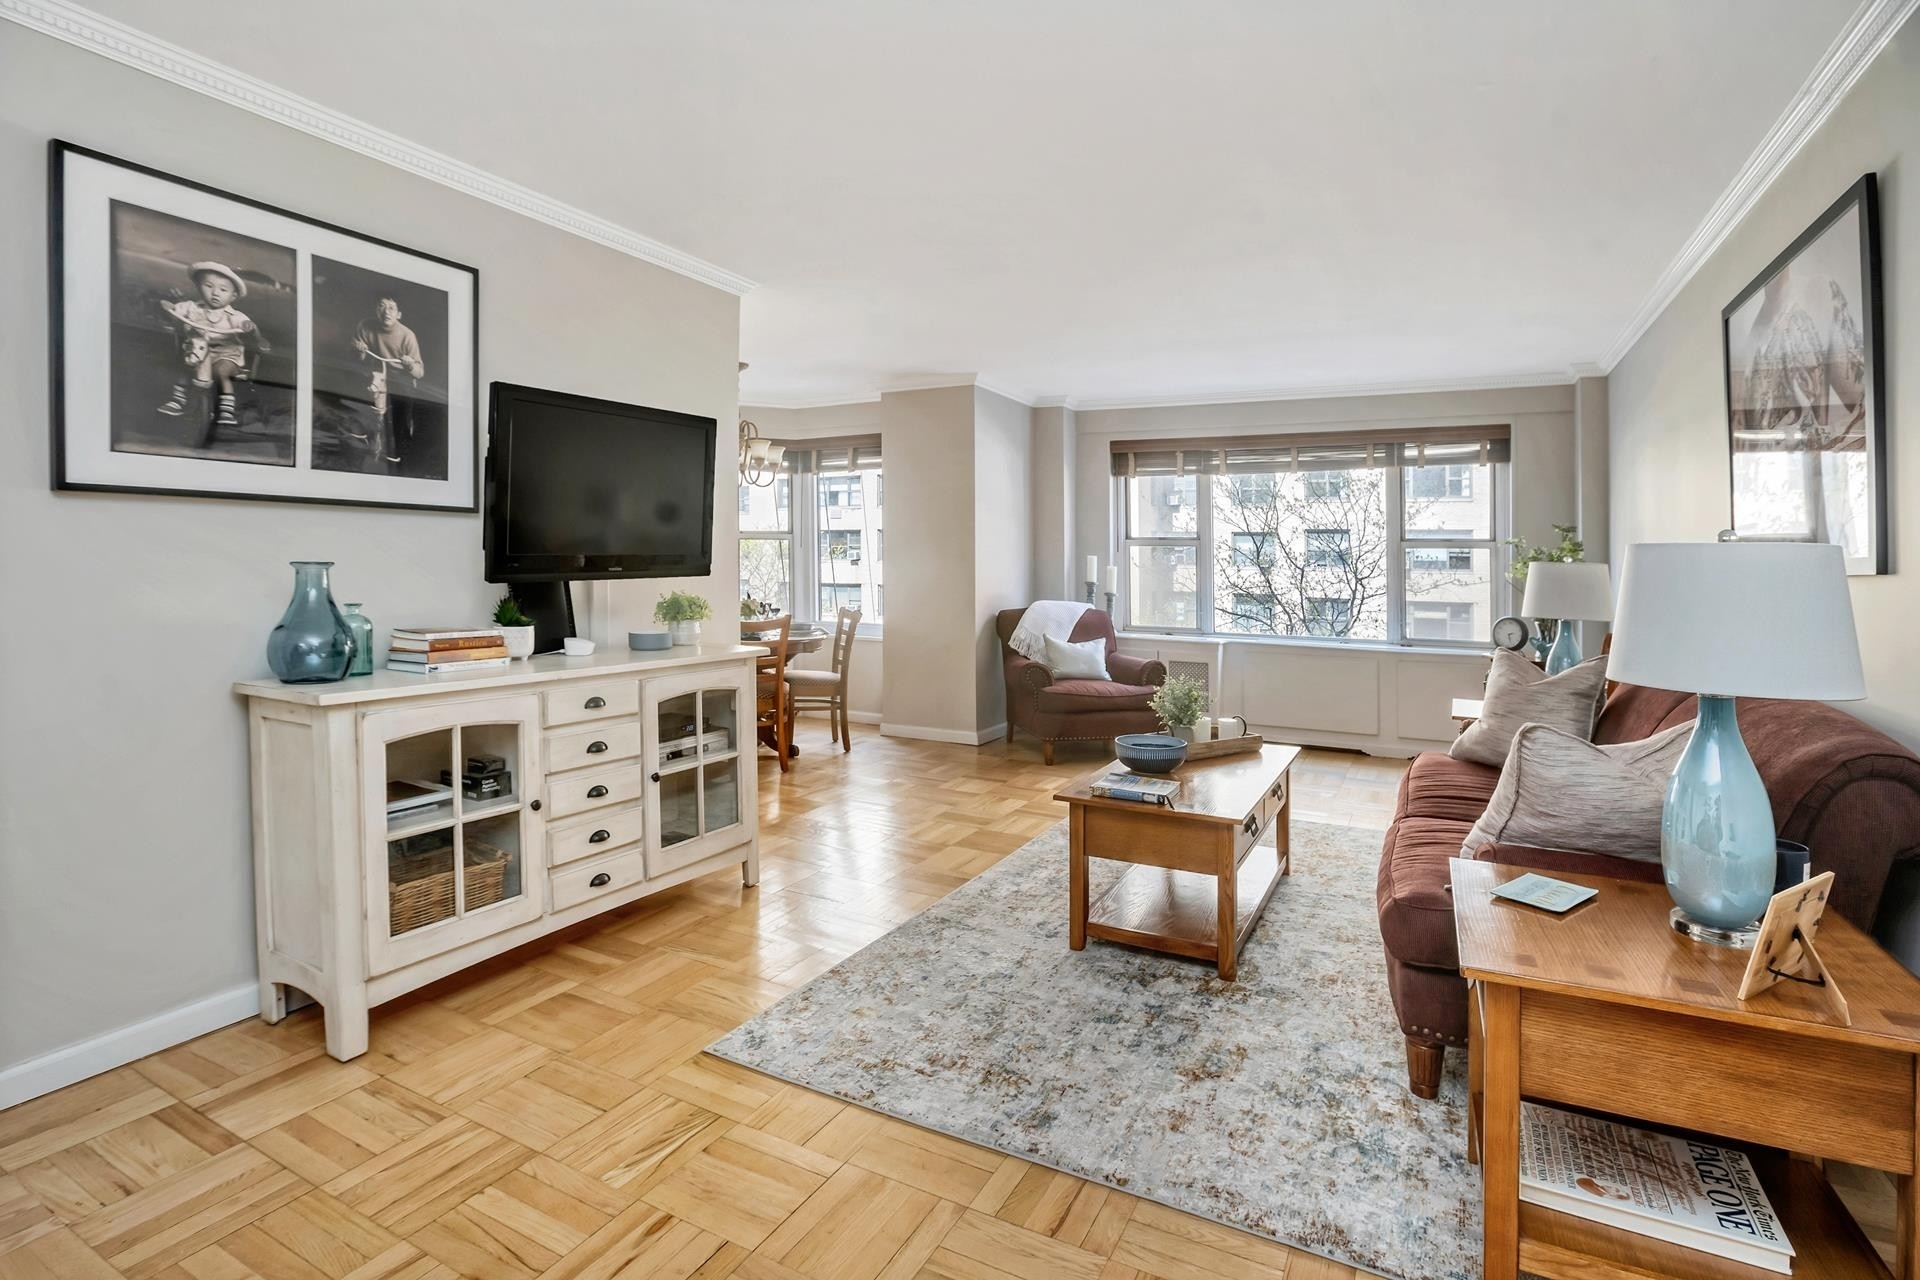 Property в The Gregory House, 440 E 79TH ST , 4D Верхняя Ист-Сайд, New York, NY 10075